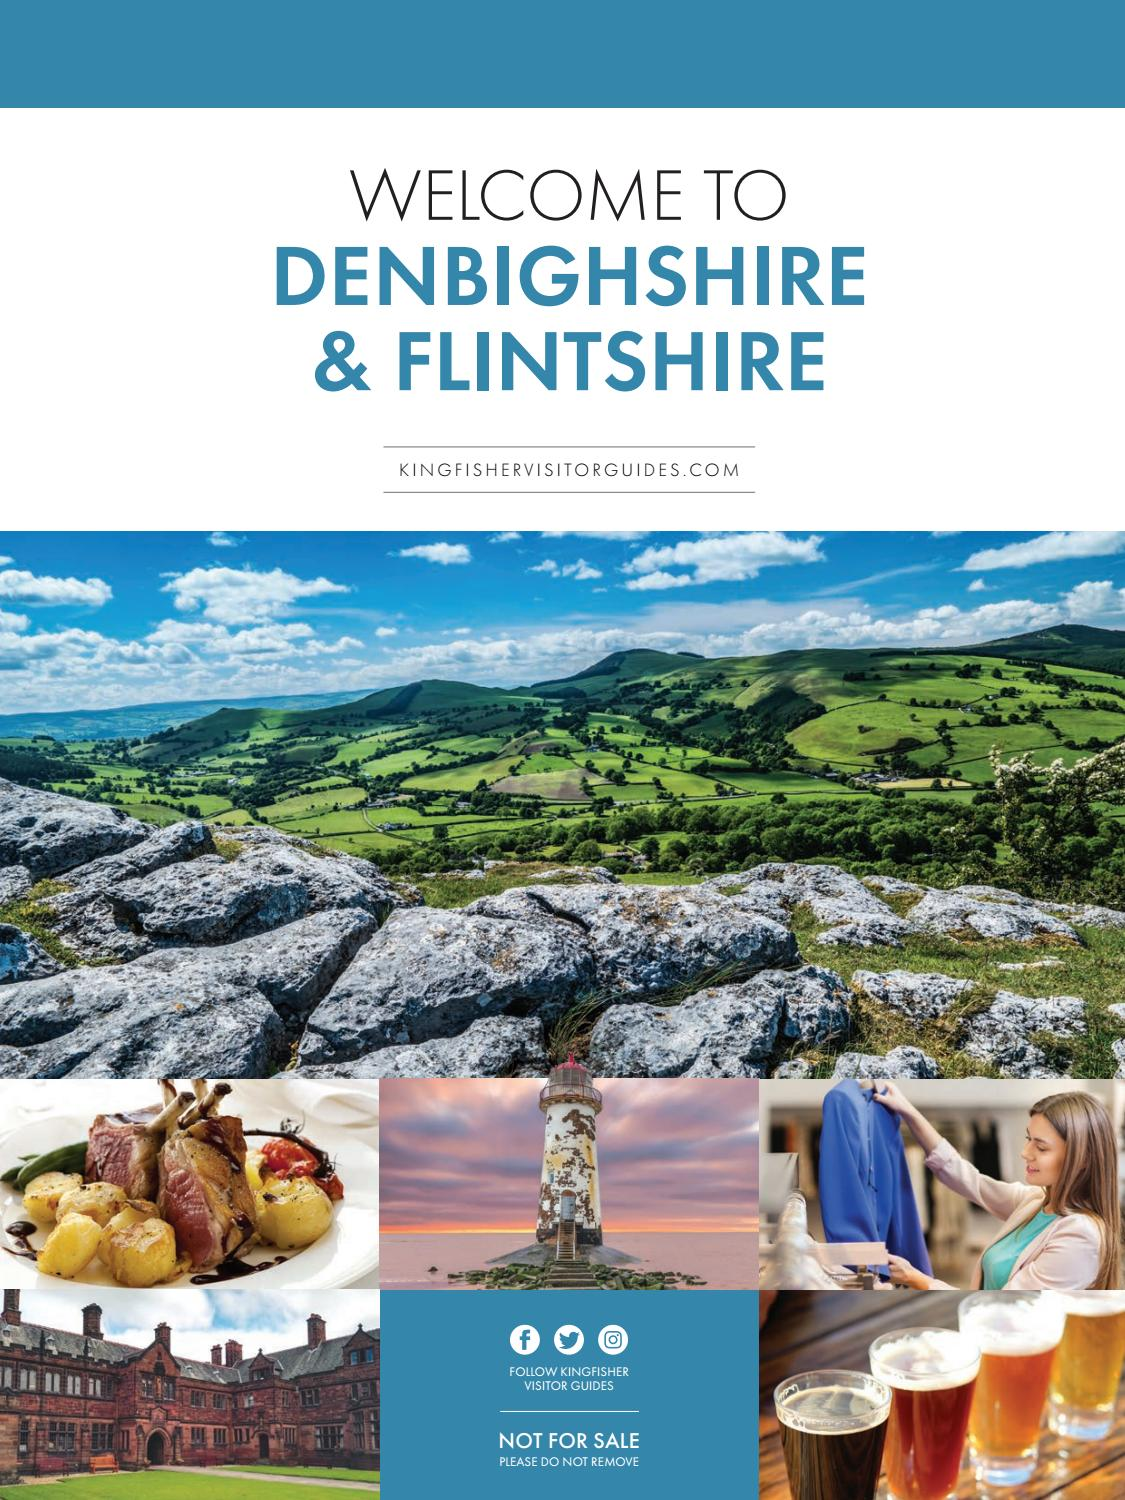 Welcome to Denbighshire & Flintshire by Kingfisher Visitor